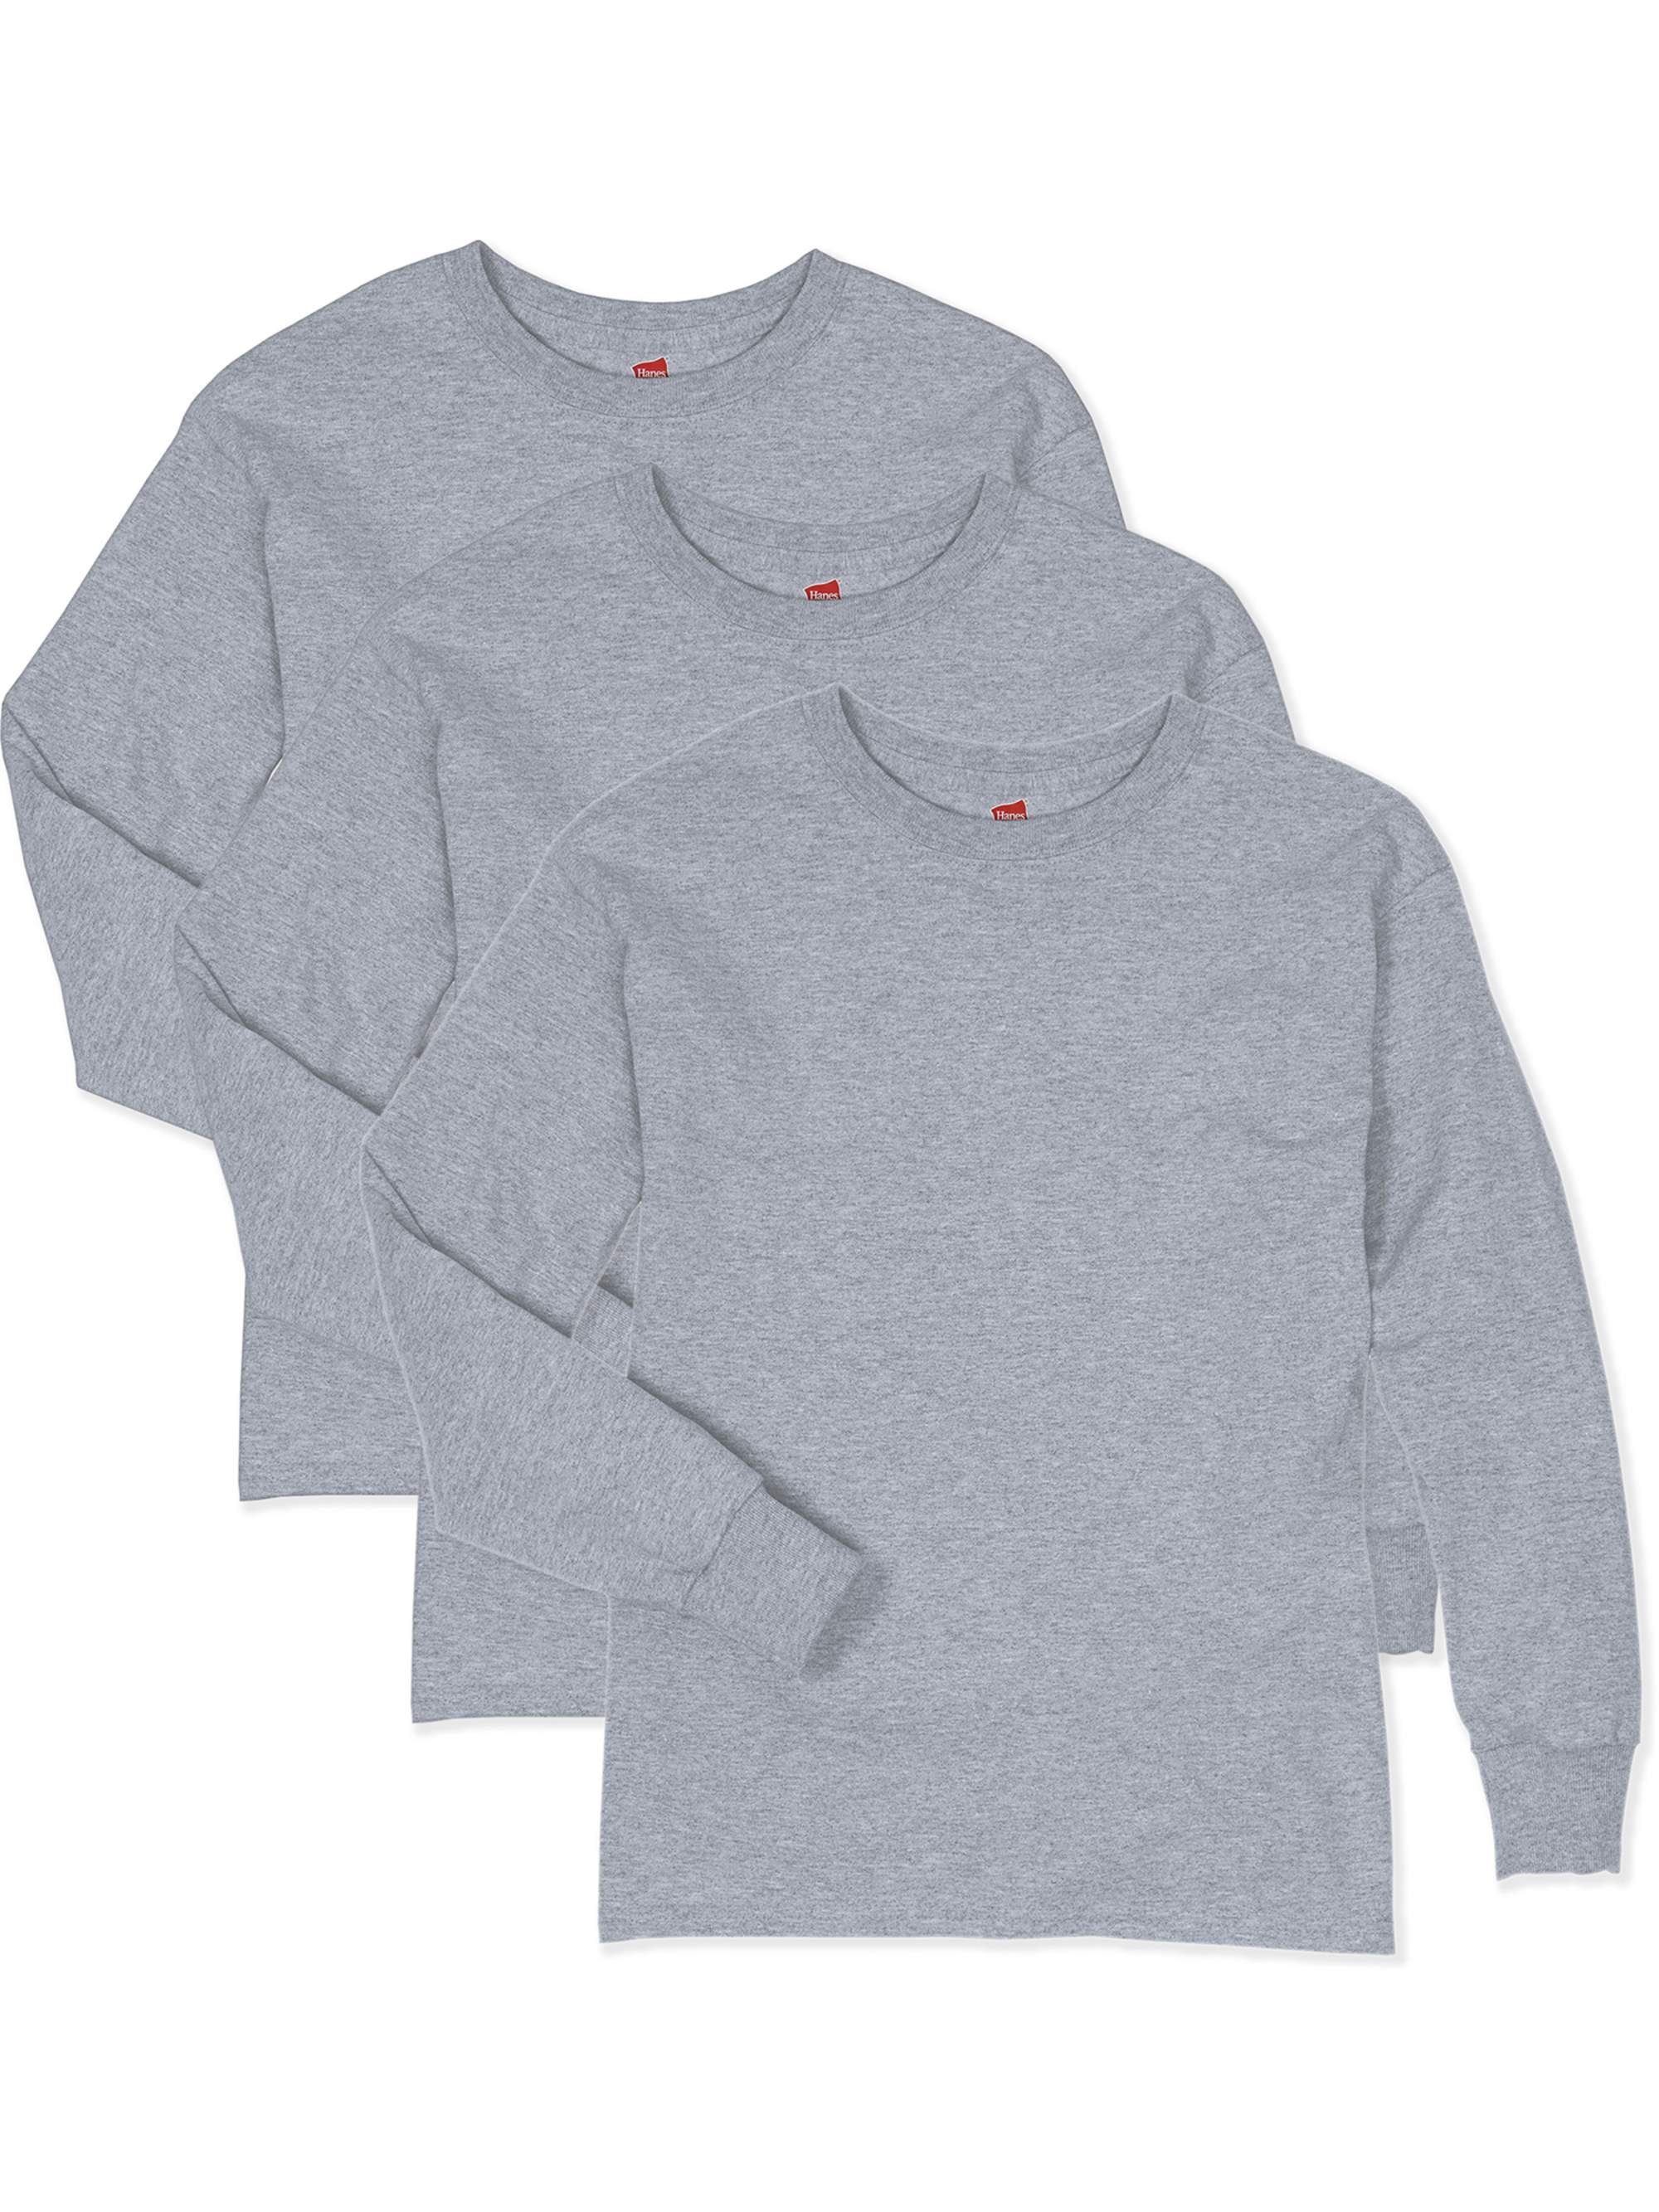 Hanes ComfortSoft Long Sleeve Tee, 3-Pack Set (Little Boys & Big Boys)